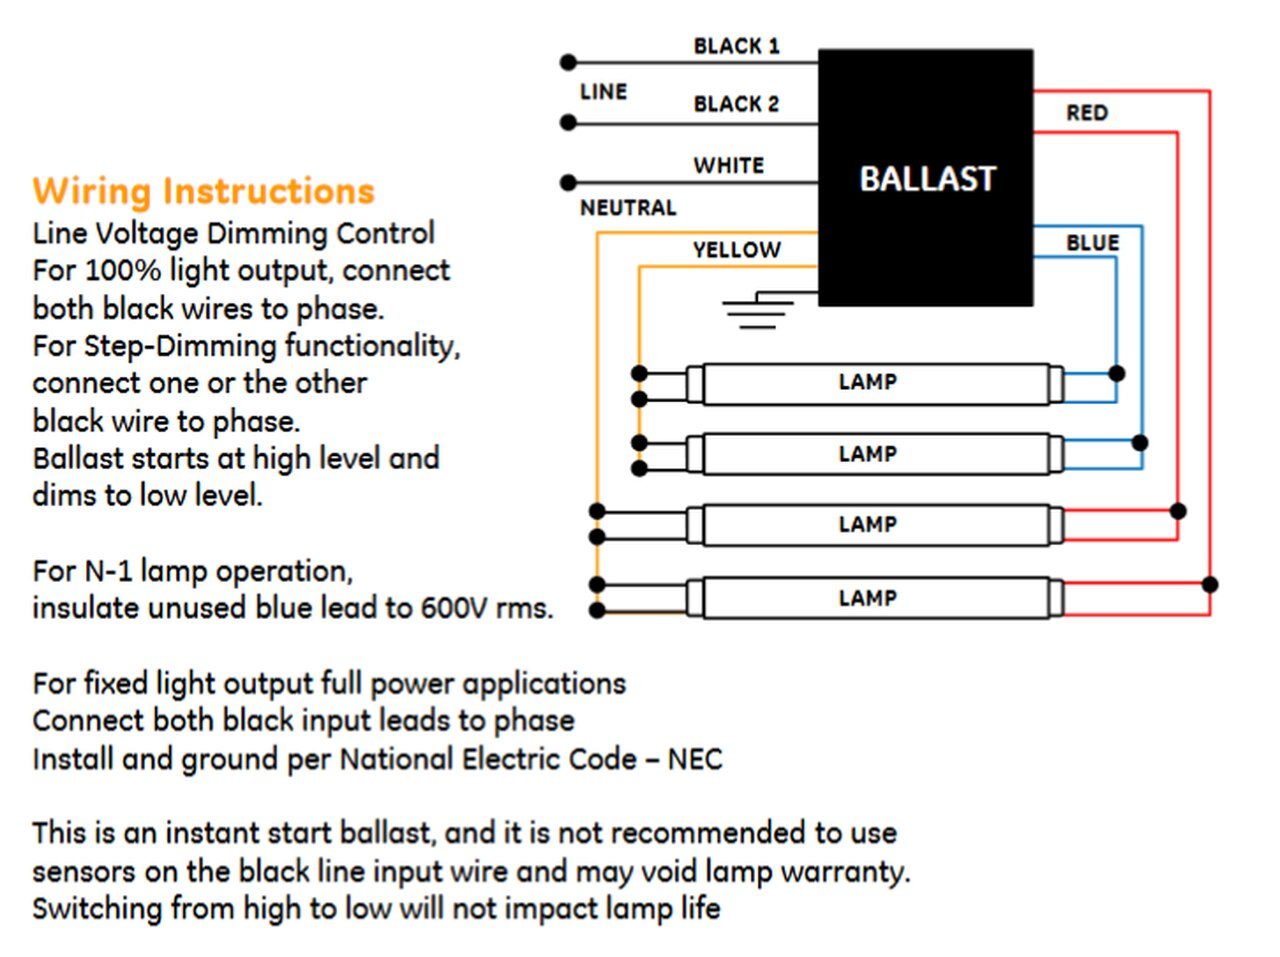 Ge Ballast Wiring Diagram For Sings 2003 Expedition Fuse Box Location Wiring Tukune Jeanjaures37 Fr